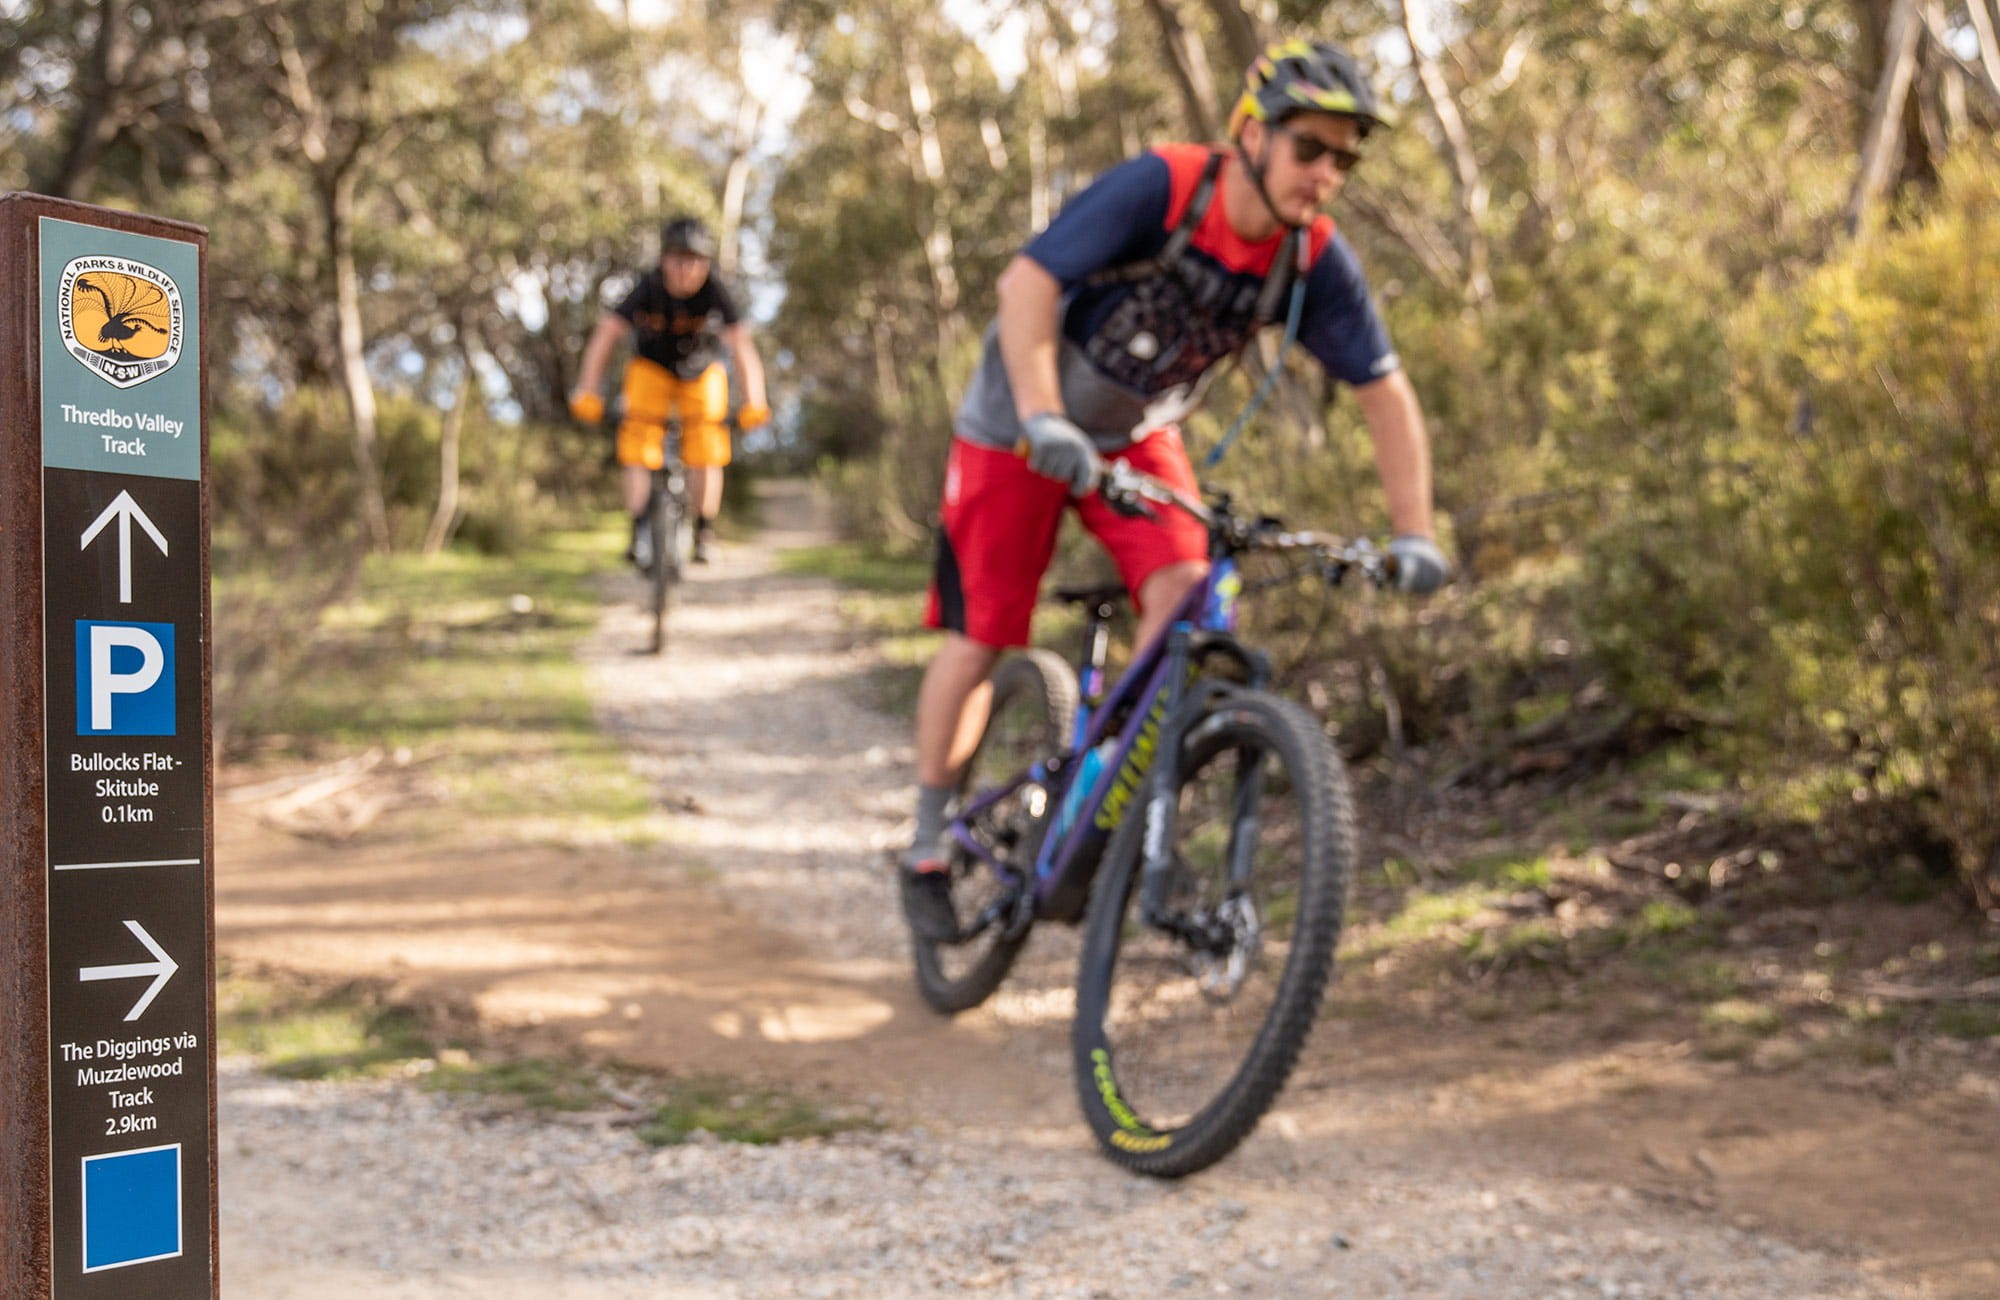 Two mountain bike riders cycle pass a sign at the junction of Muzzlewood and Thredbo Valley tracks, Kosciuszko National Park. Photo: Robert Mulally/DPIE